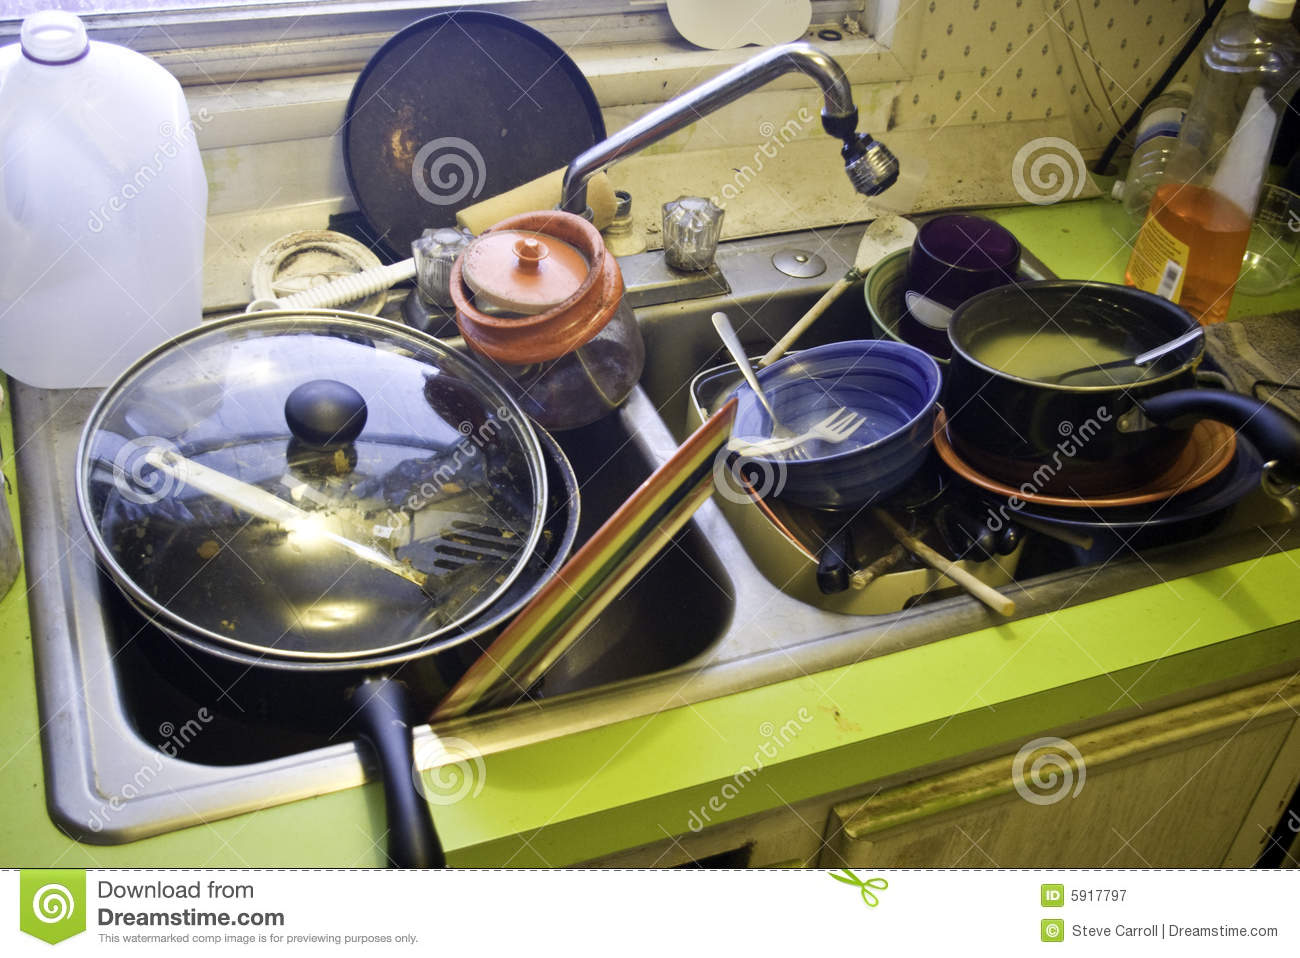 Kitchen Sink With Dishes brilliant kitchen sink with dishes in washingup bowl and drying